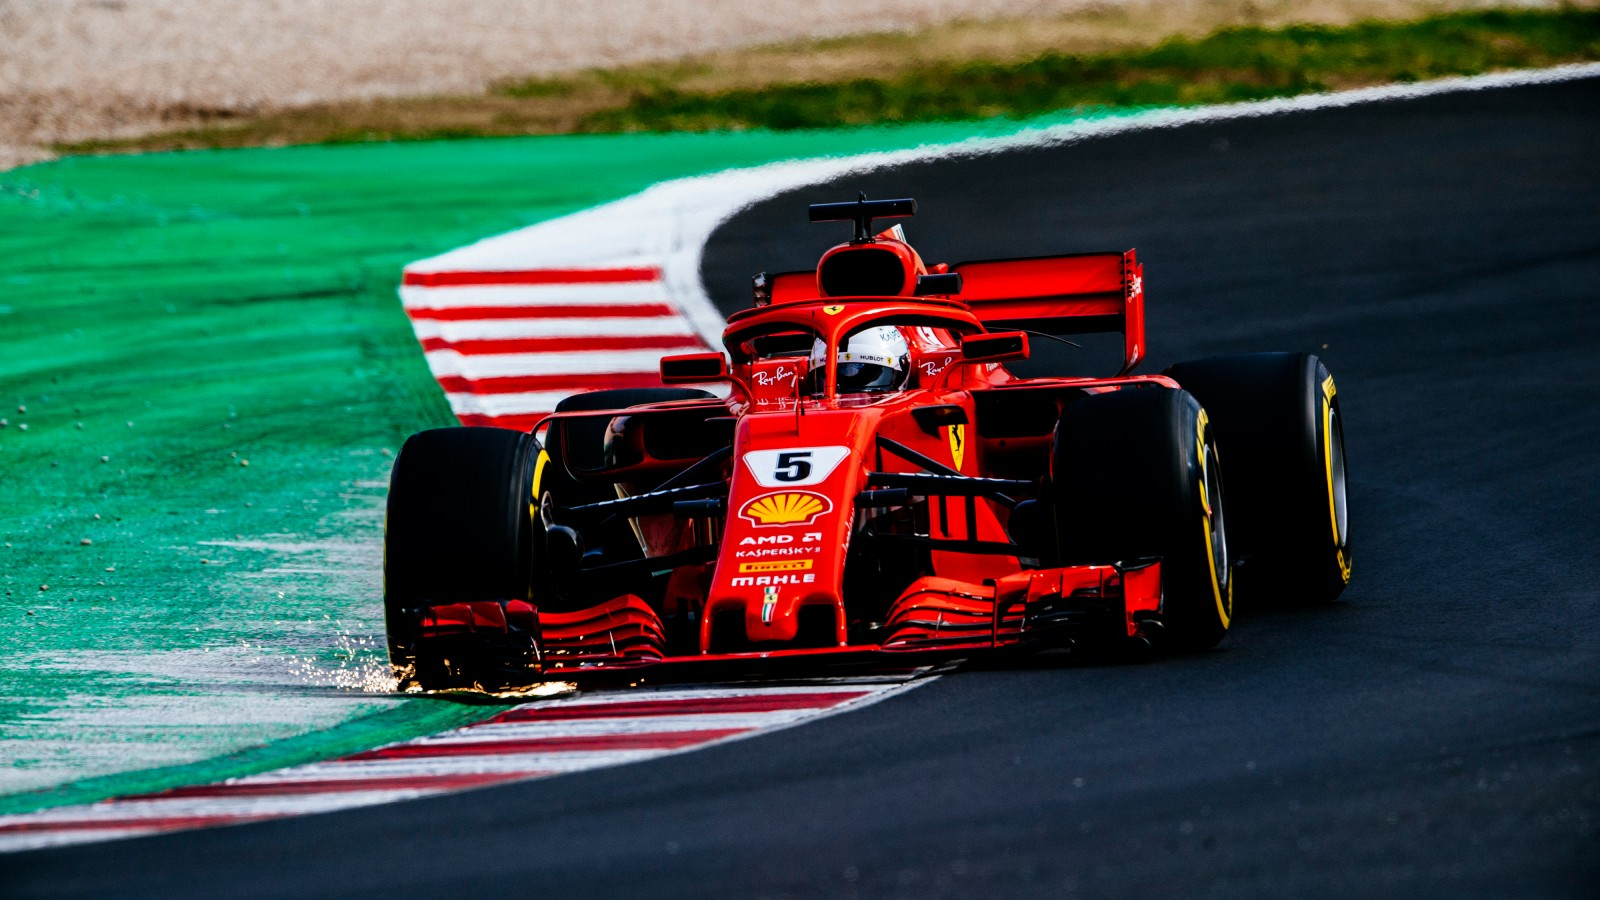 2018 Ferrari Sf71h F1 Formula 1 4k 2 Wallpaper Hd Car